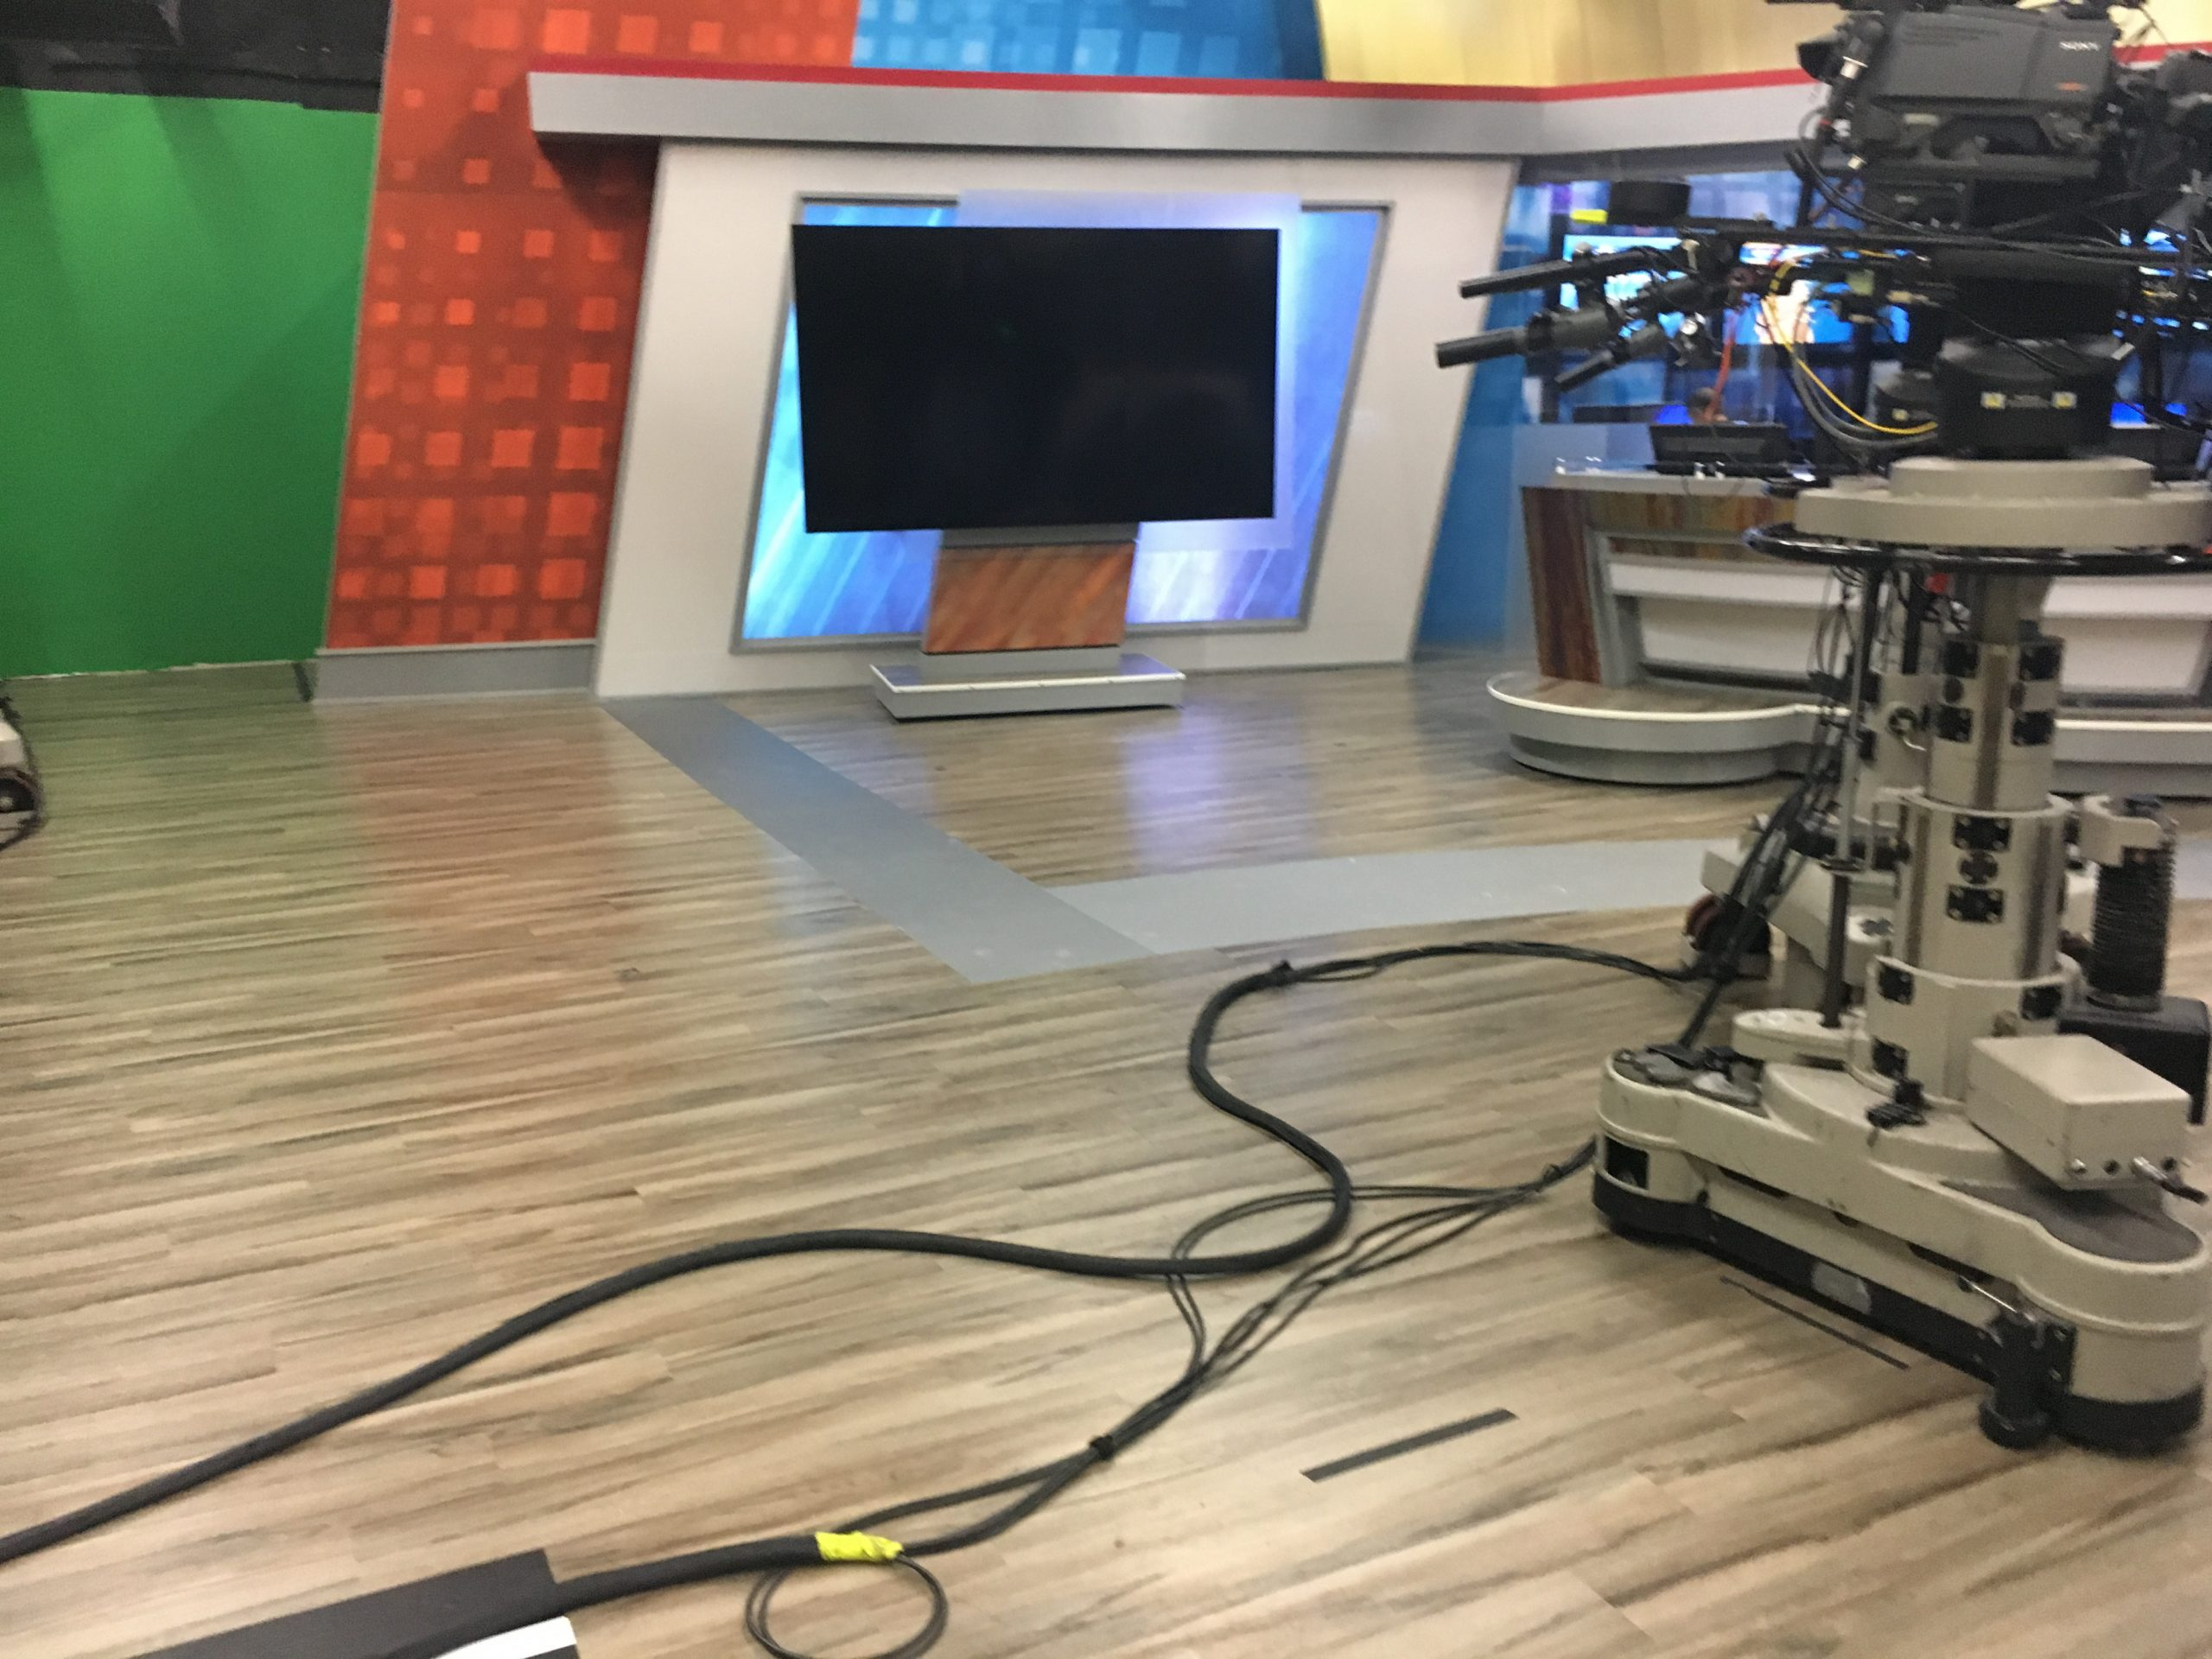 Wesh Studio flooring with camera and television